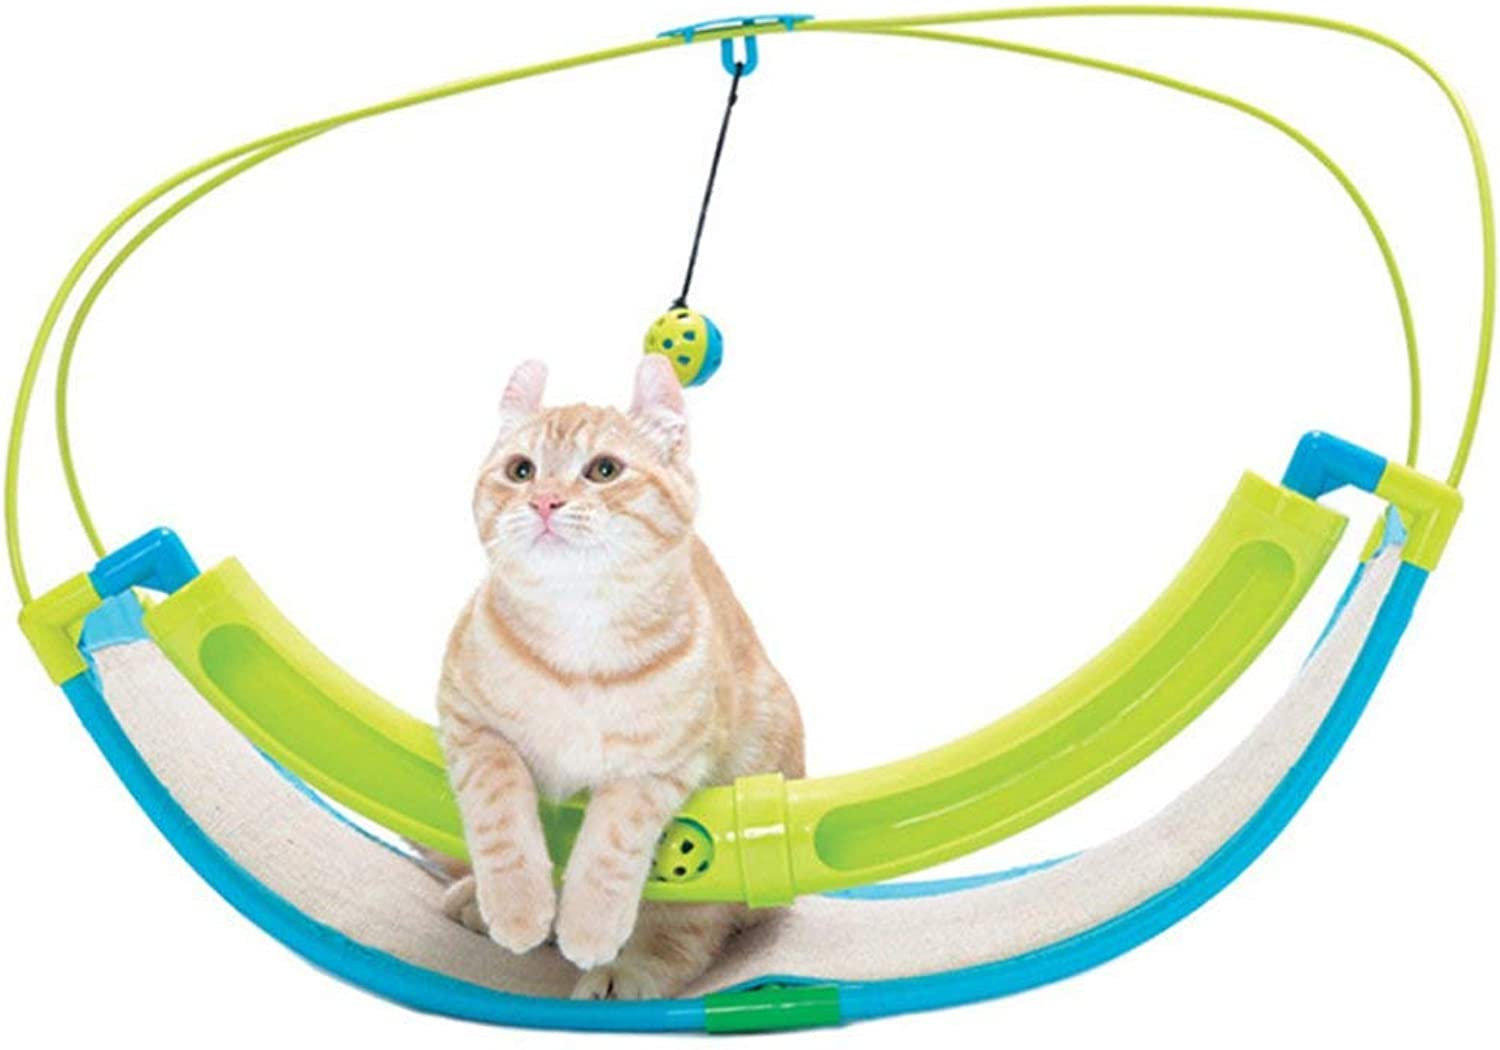 IW.HLMF Kitten Hammock Bell Play Toys With Swing Cat flax Scratch Board Kitten Game Cat Bell Ball Cradle Cat Toys Pet Supplies